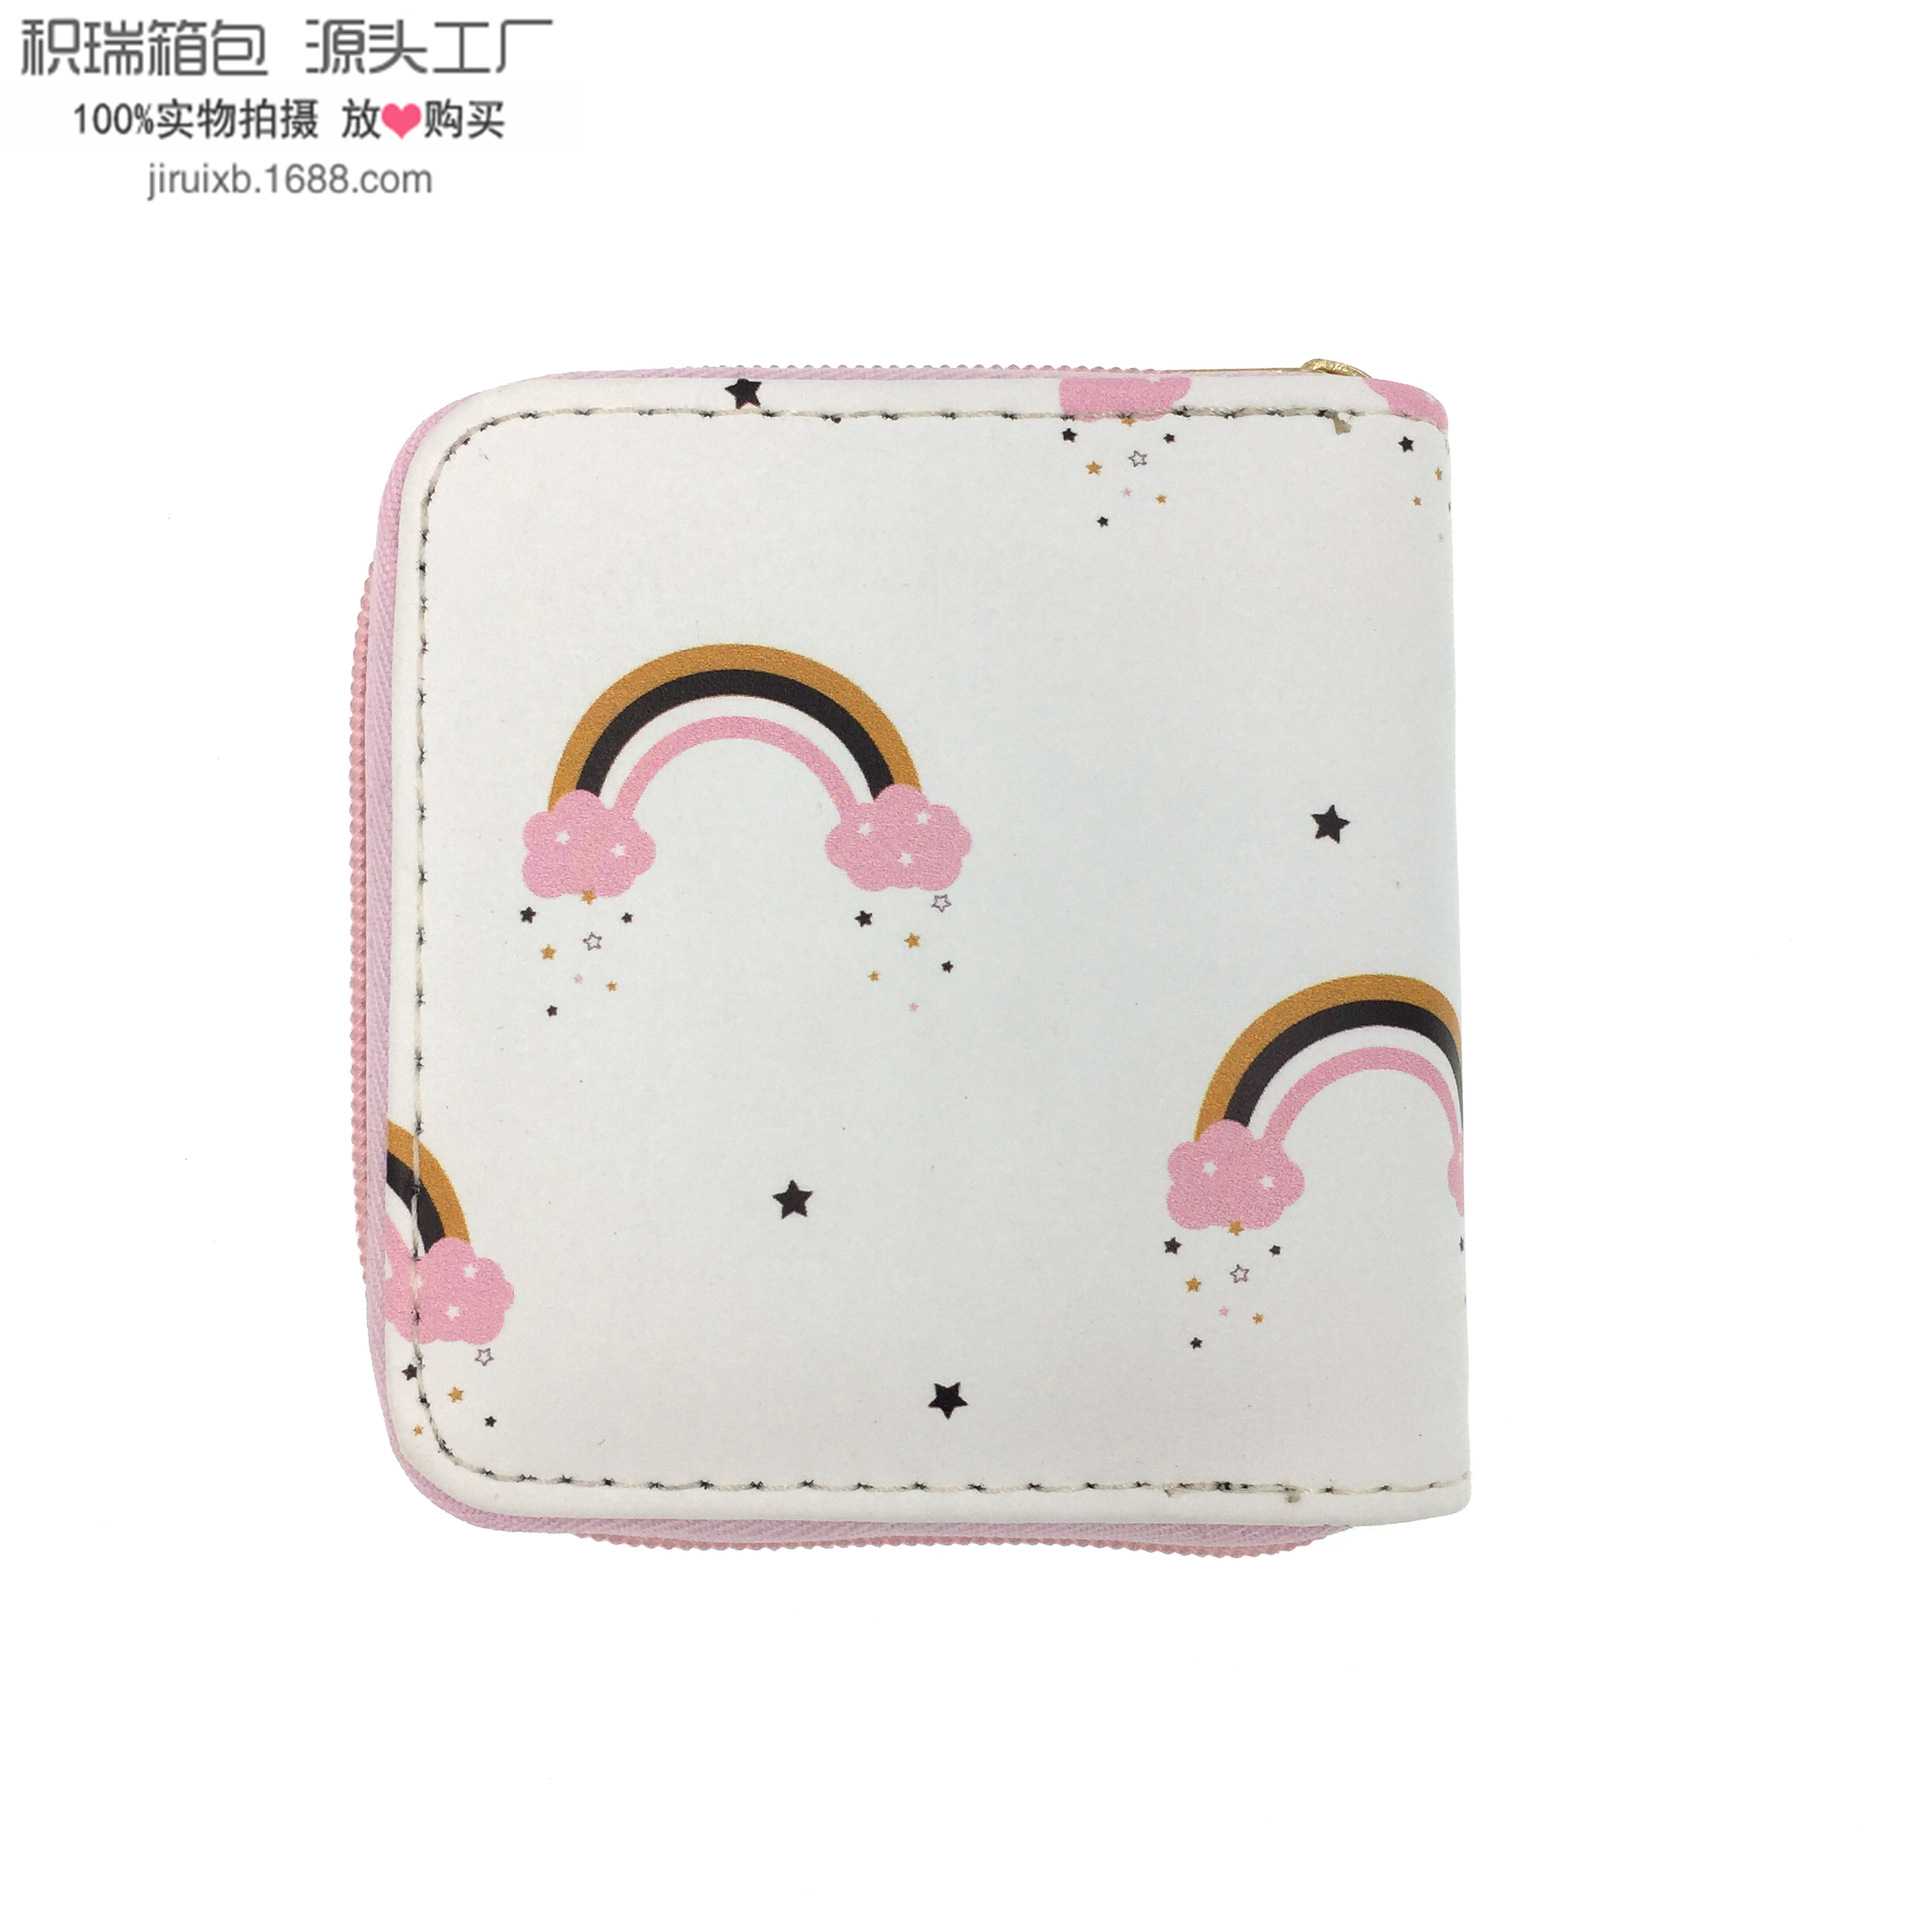 -Small Pineapple Pu Wallet Zipper Bag Children Purse Earphones Storage Bag Of Data Cable